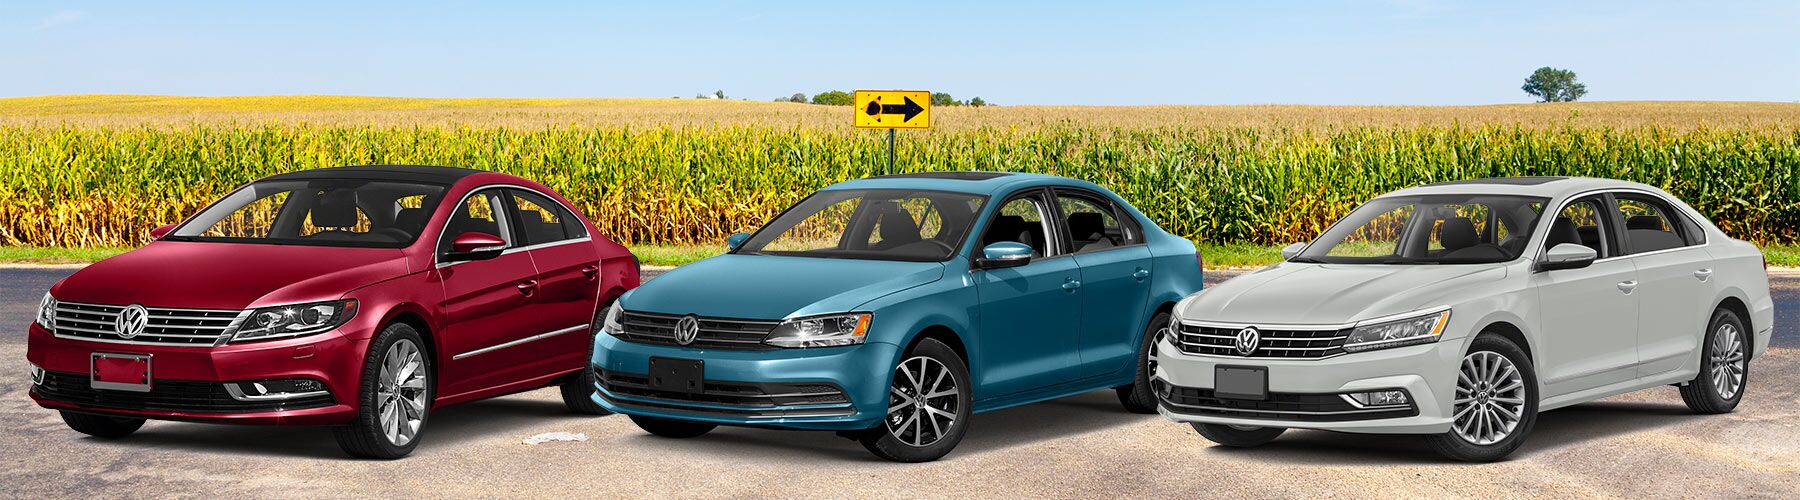 Volkswagen Sedans: the CC, Jetta, and Passat